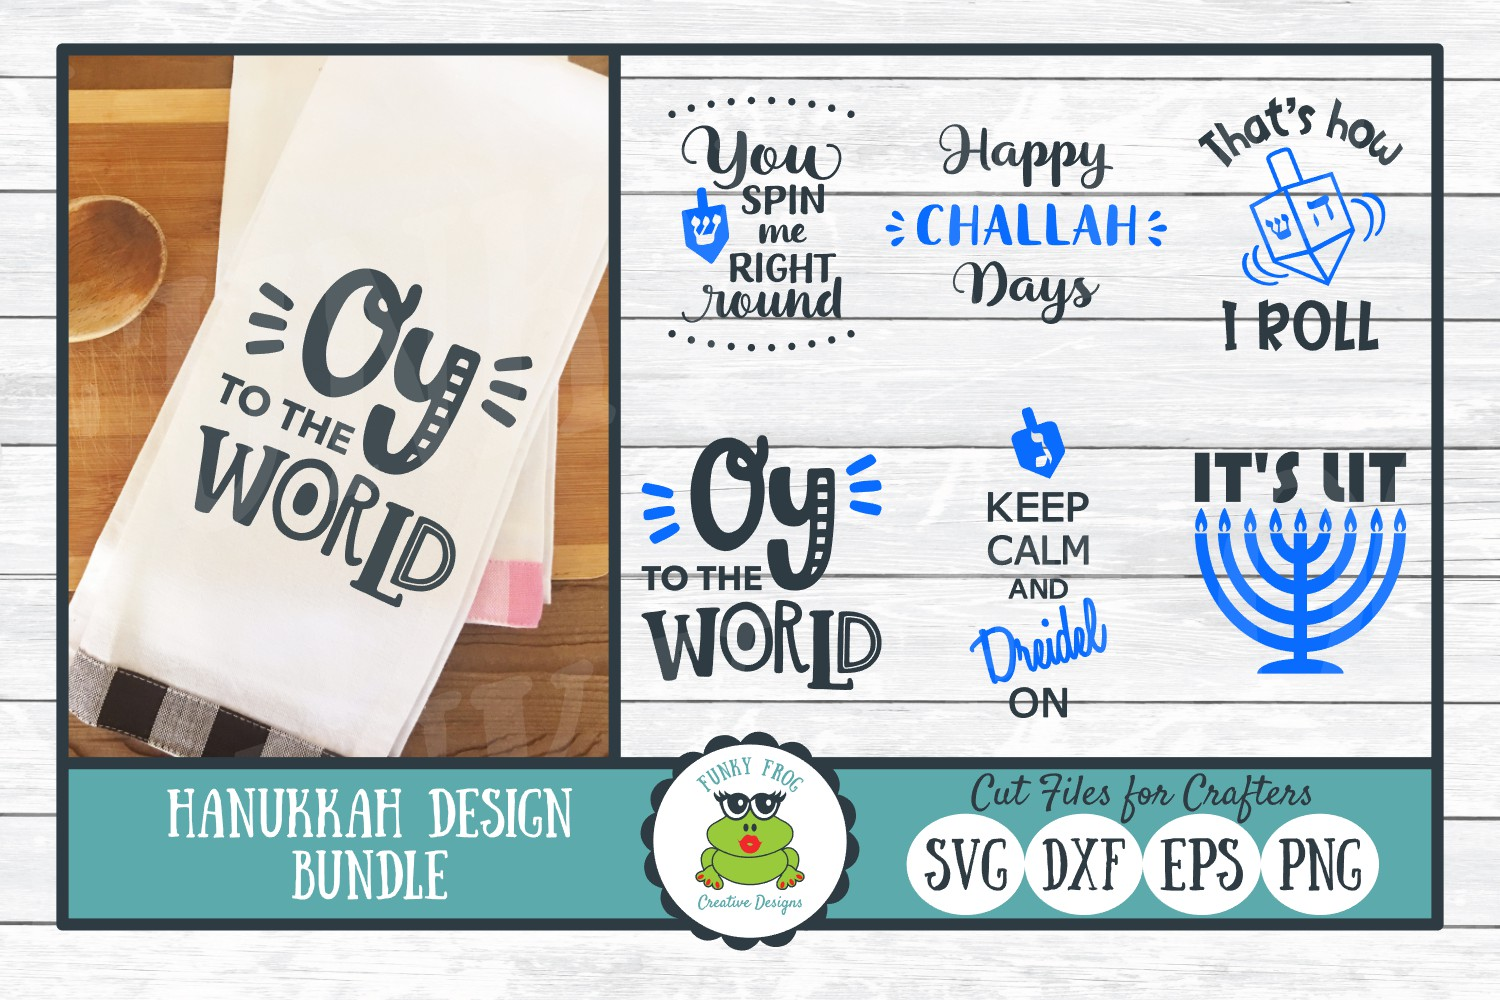 Download Free Hanukkah Design Bundle Graphic By Funkyfrogcreativedesigns Creative Fabrica for Cricut Explore, Silhouette and other cutting machines.